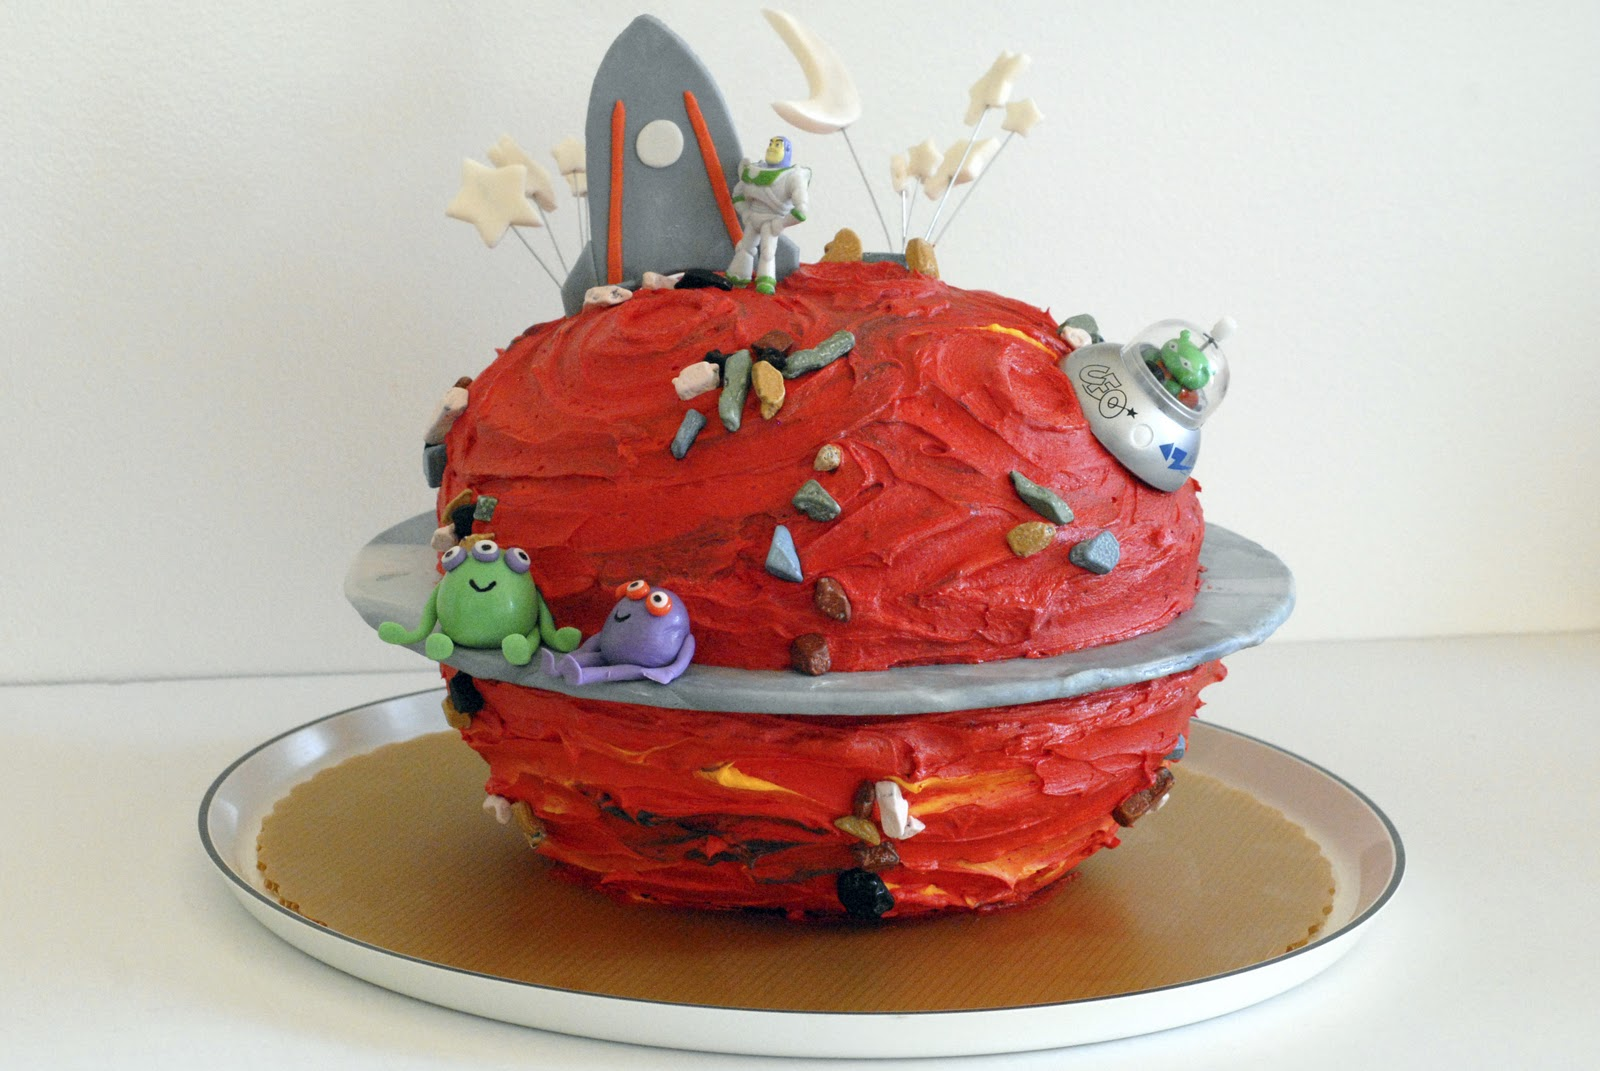 Mars Planet Cake - Pics about space